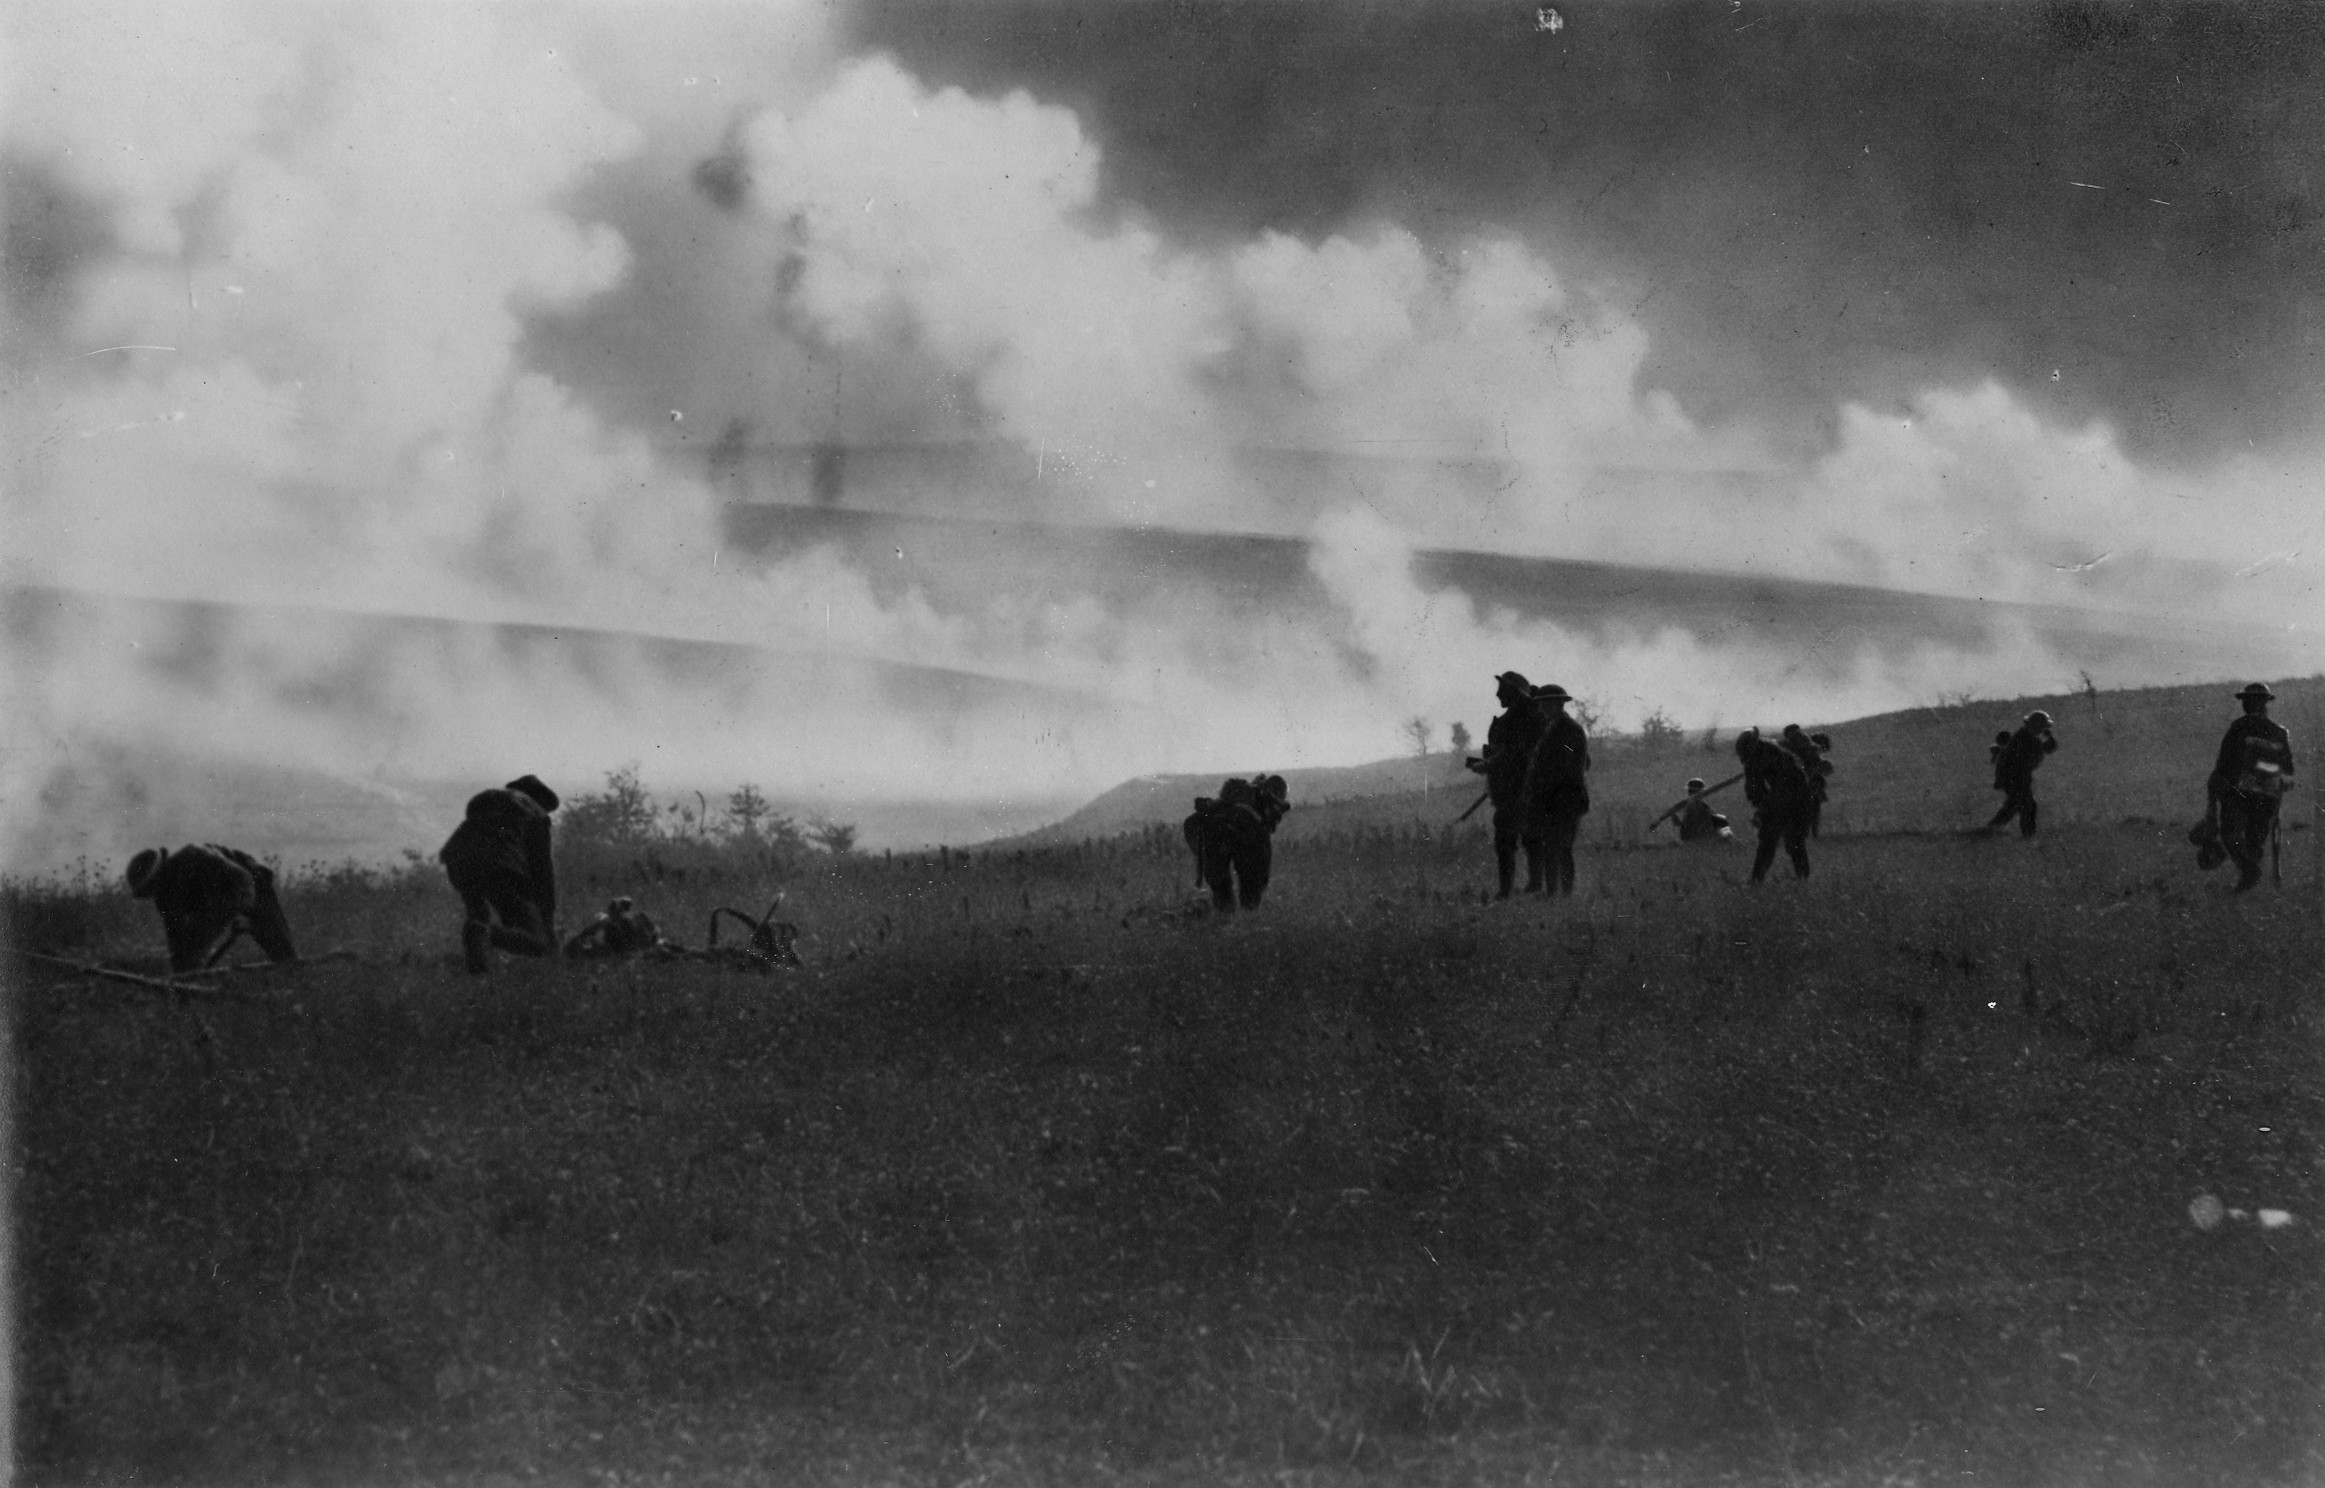 The 45th Battalion digging in under a smoke barrage near Ascension Farm on the second objective in the attack made by the 1st and 4th Australian Divisions and British Divisions upon the old British trench lines near Hargicourt and the outpost line of the Hindenburg system.